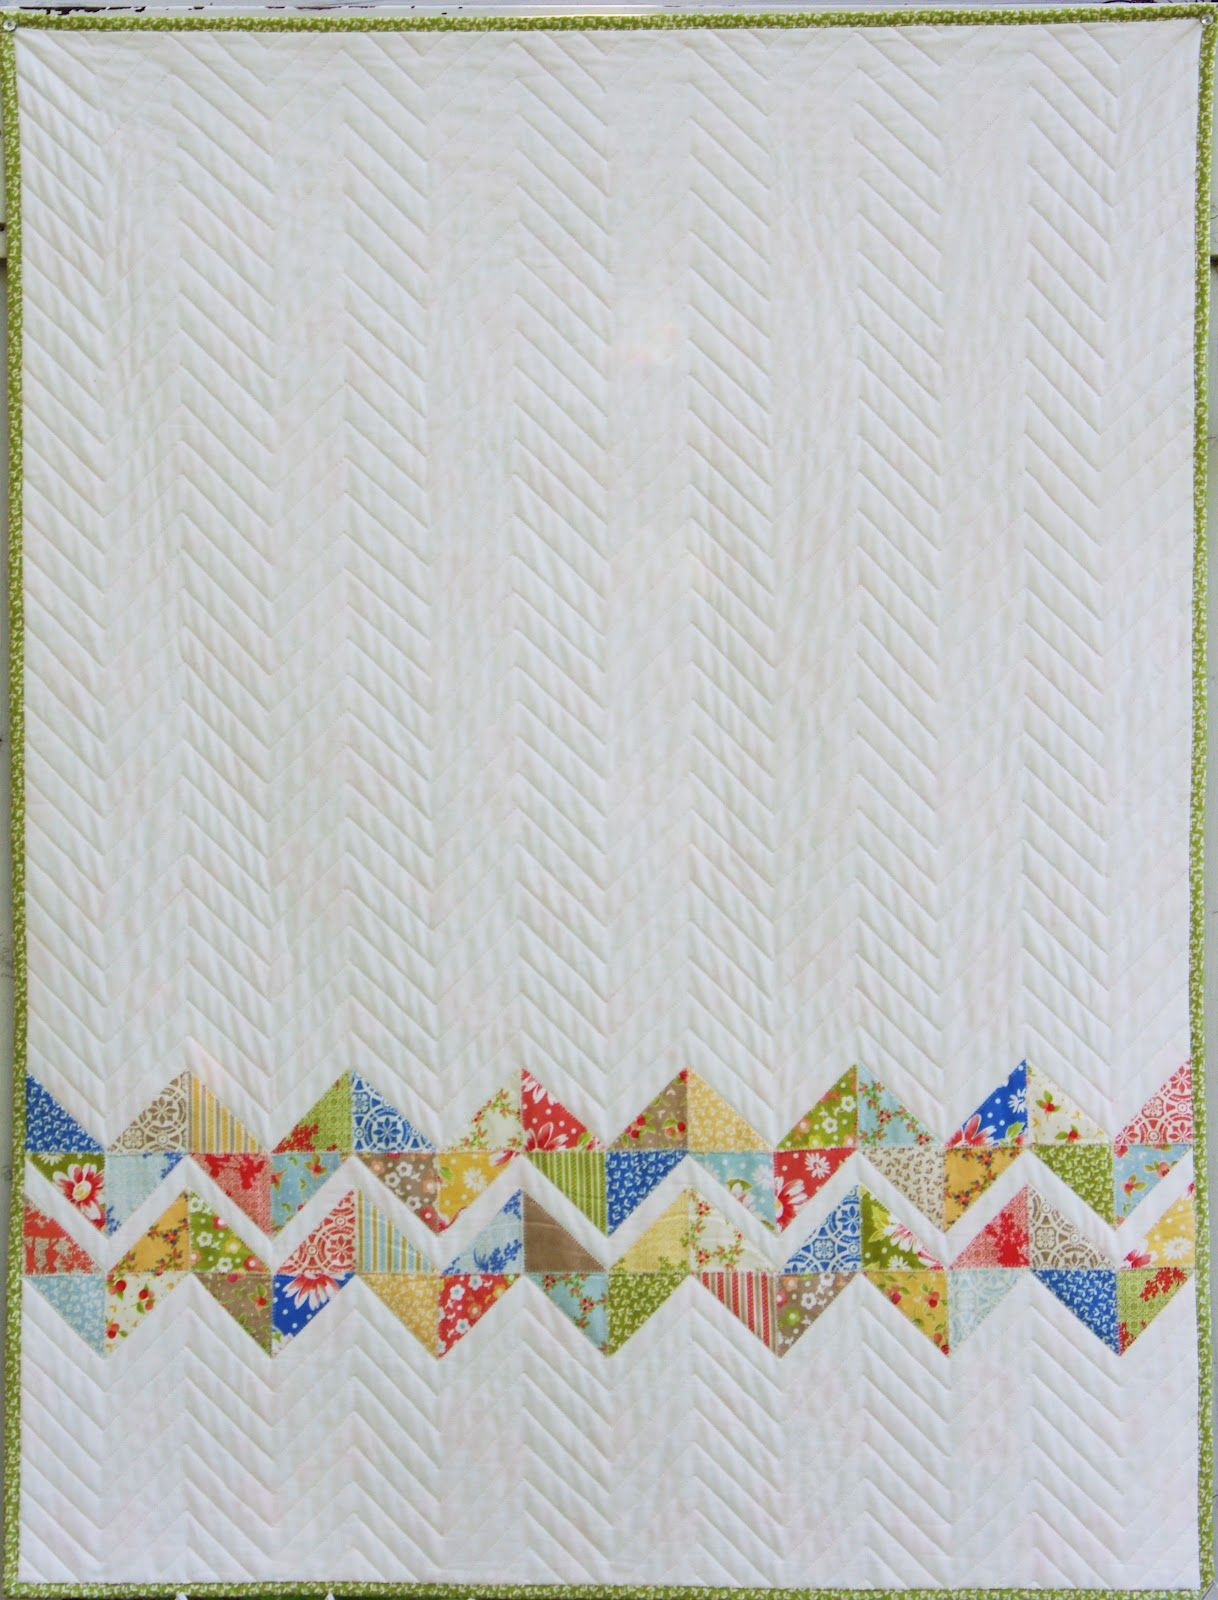 Here is my latest quilt and incidentally Bloggers Quilt Festival entry. This is a quilt I started making on a whim a couple weeks ago. W...